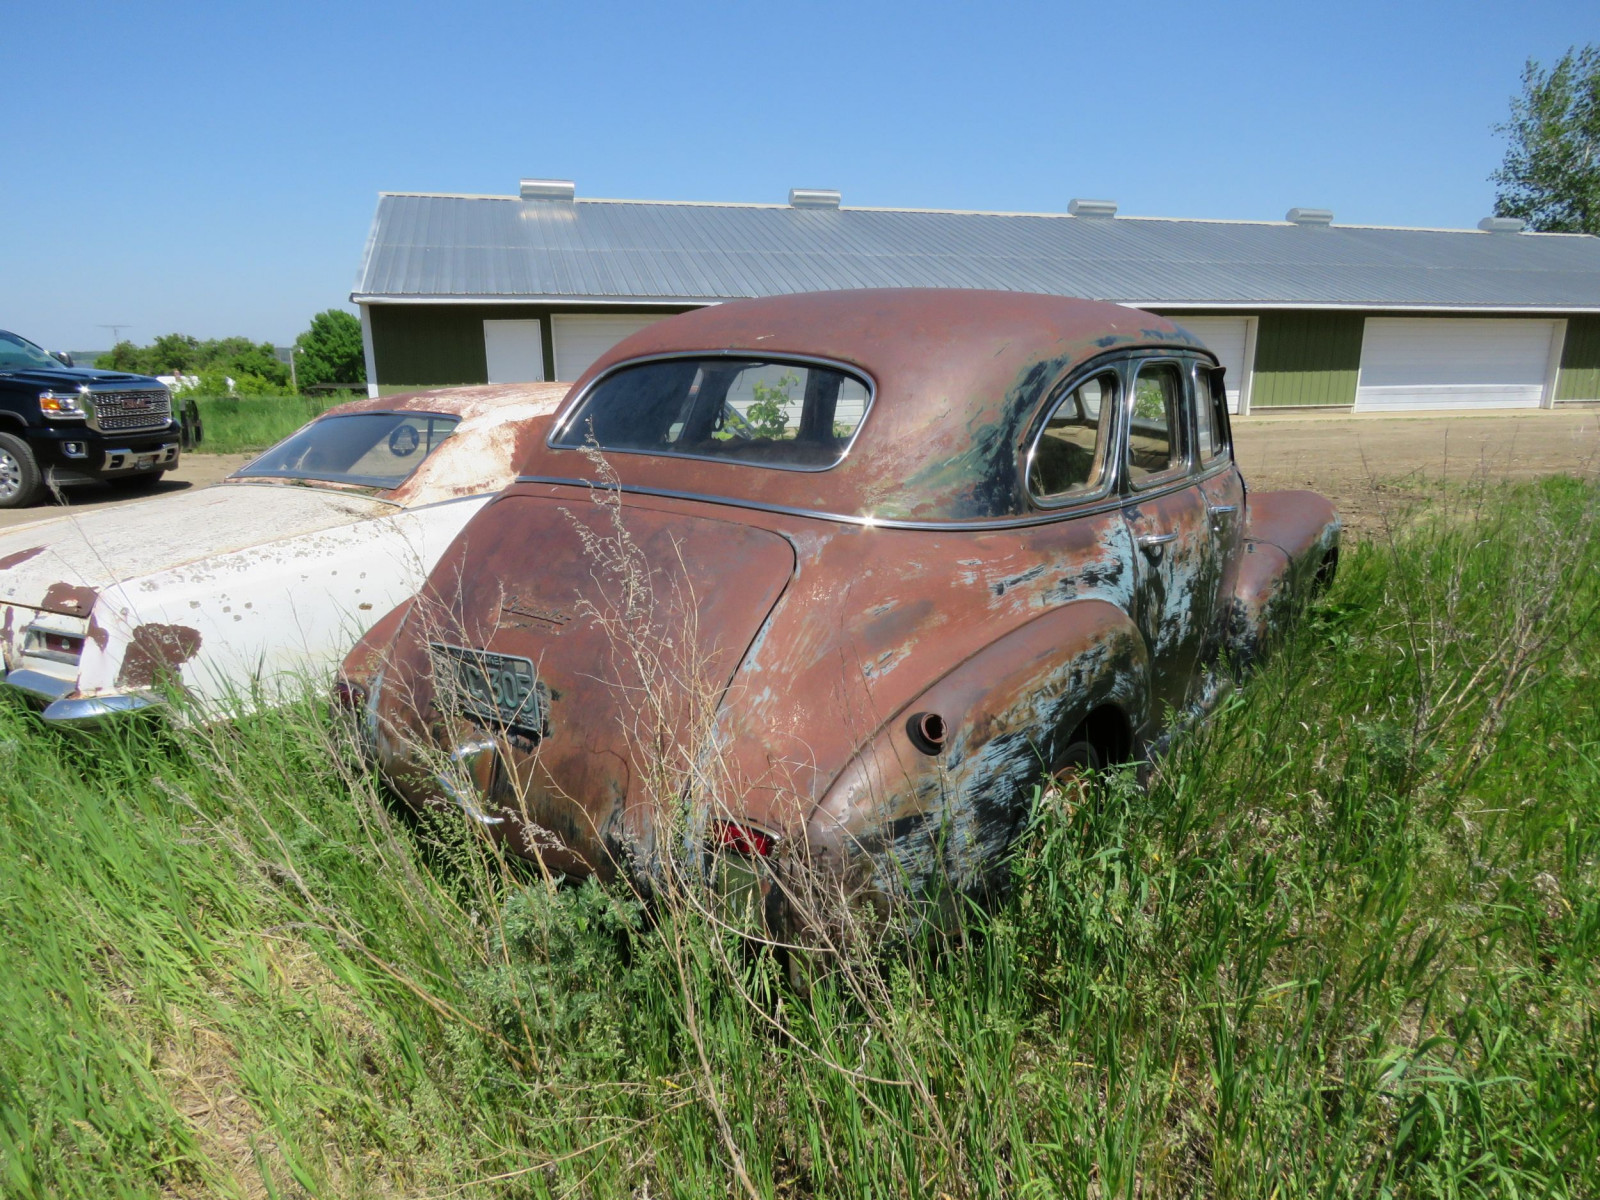 1947 Chevrolet Fleet master 4dr Sedan for Project or parts - Image 5